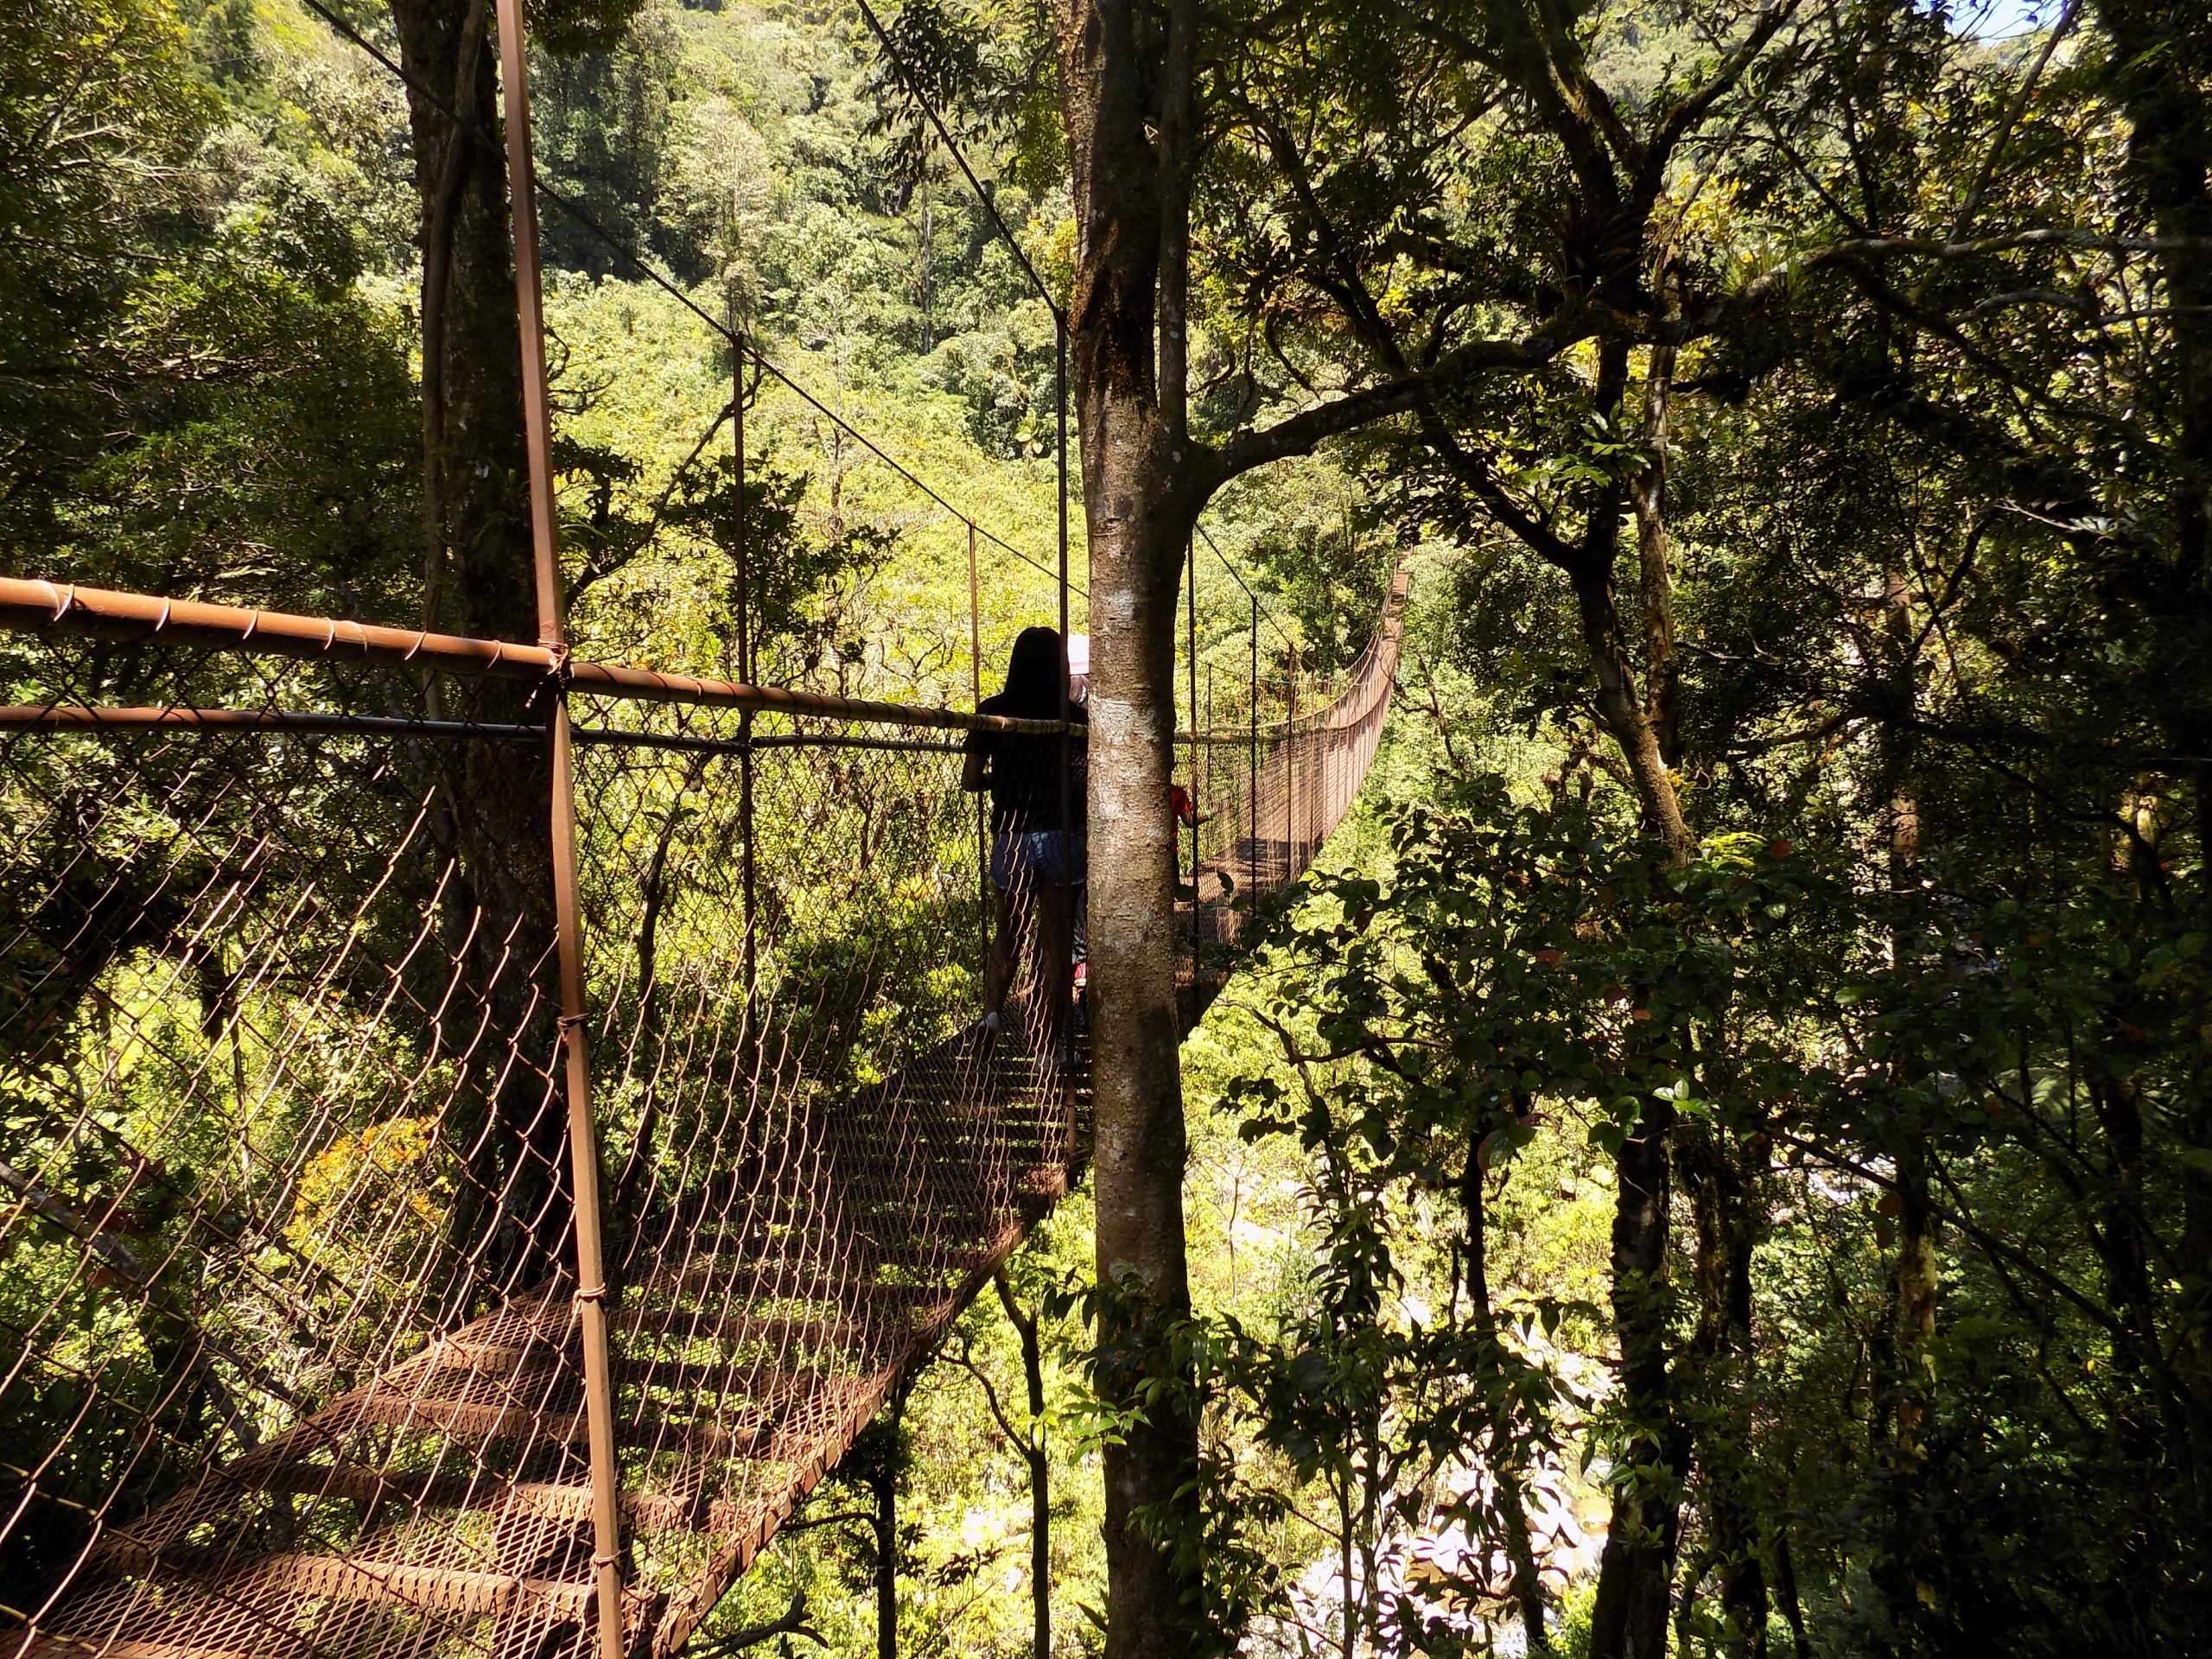 hanging-bridges-and-ziplines